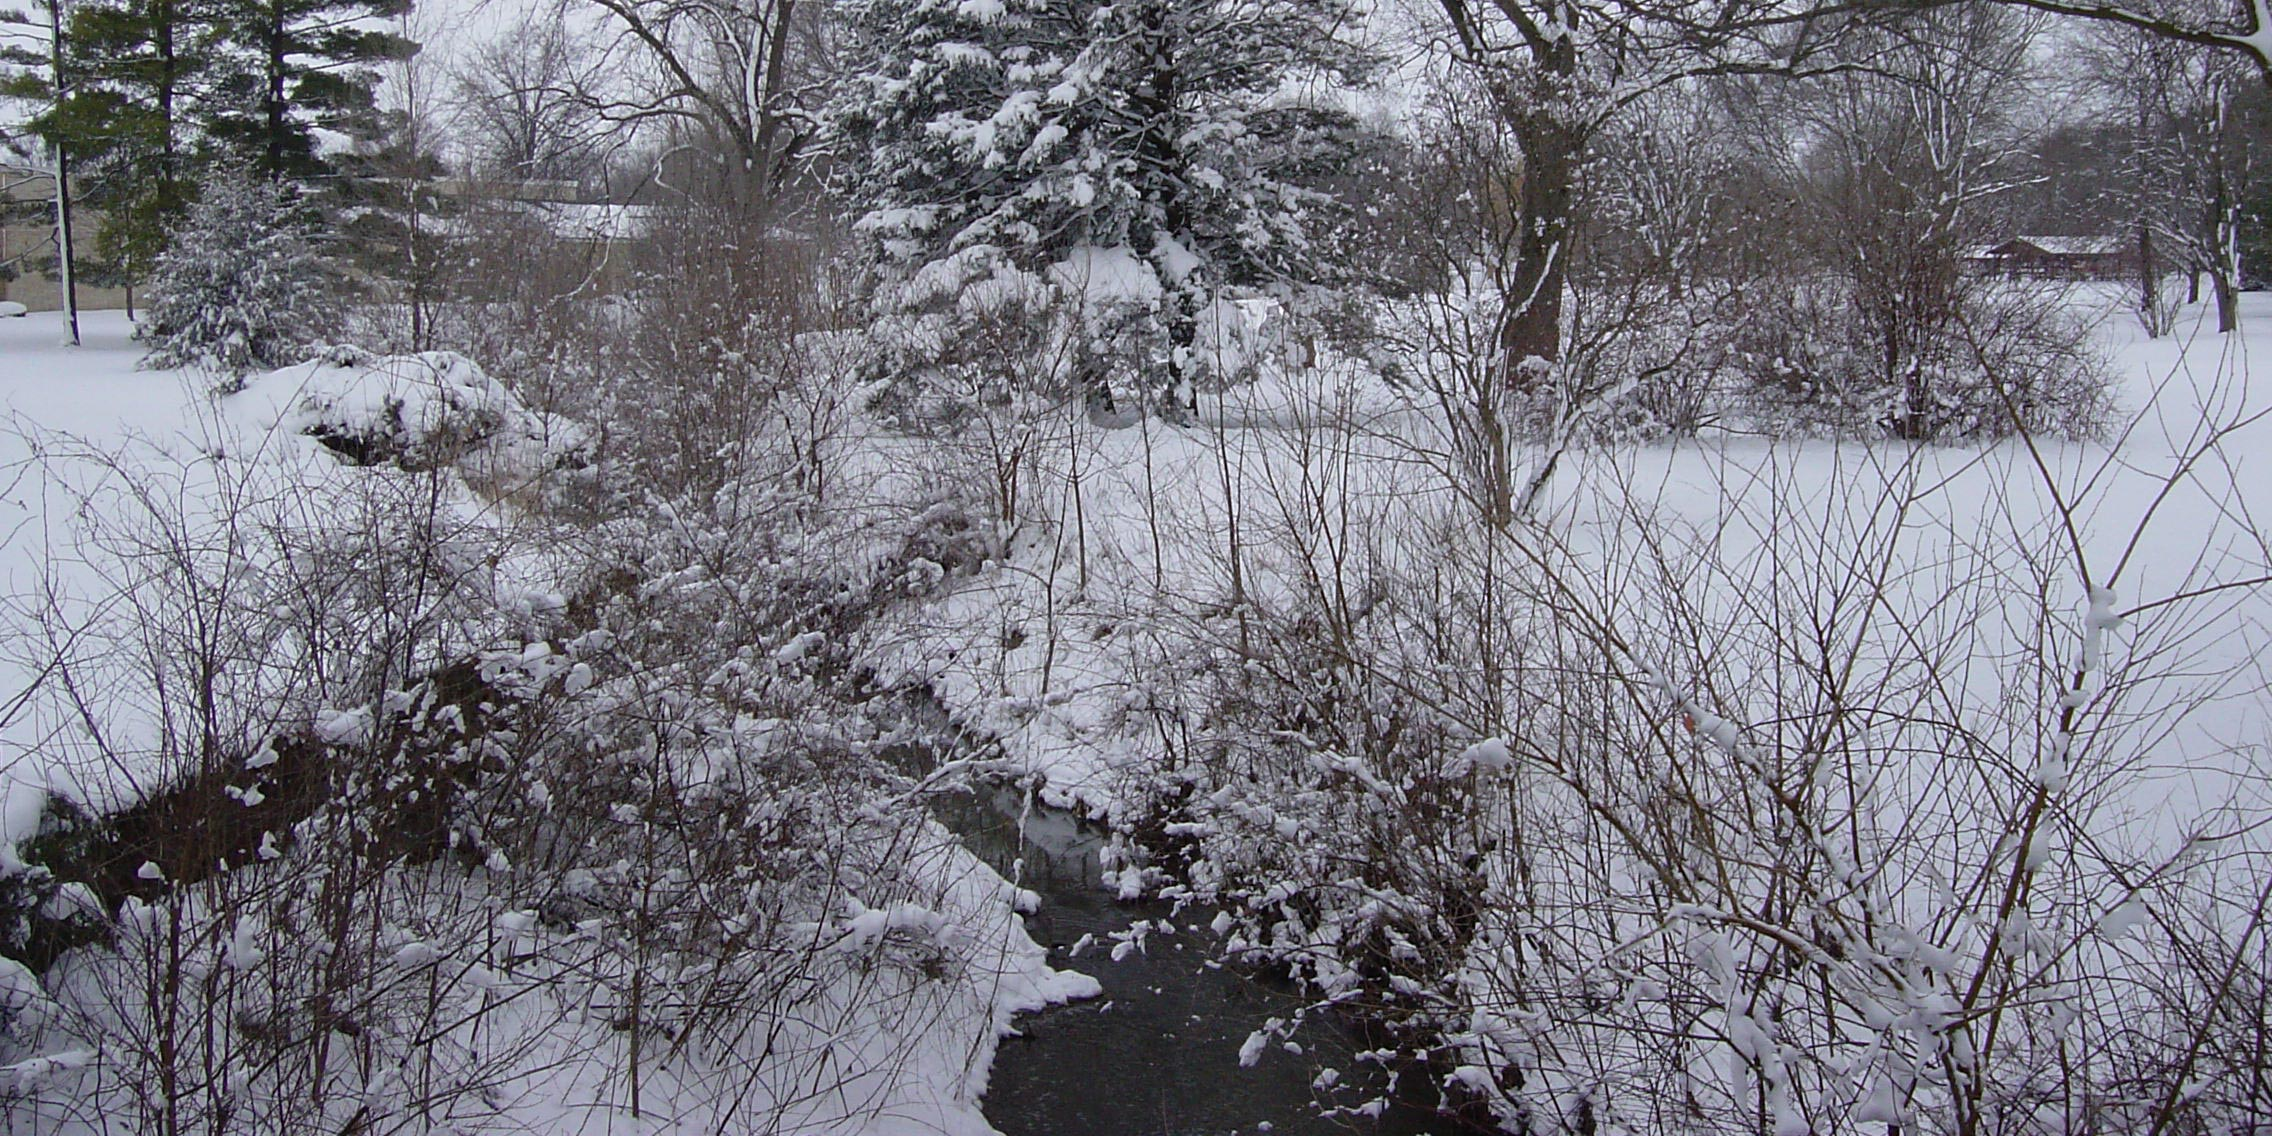 A shallow creek meanders through a snow covered park landscape.